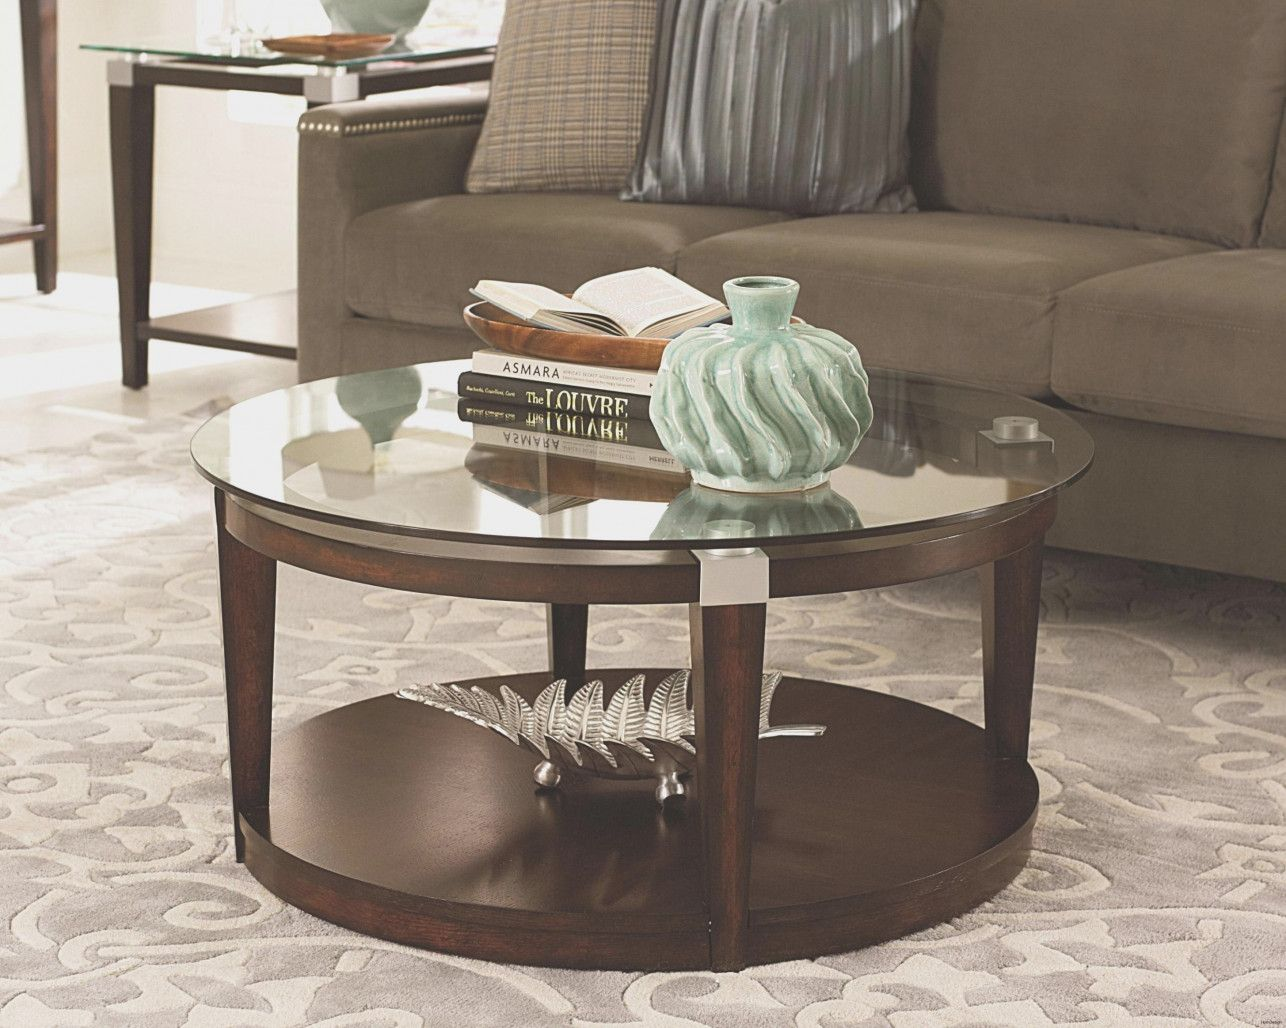 28 Fresh Glass Coffee Table And End Tables Set 2020 Round Coffee Table Decor Round Coffee Table Round Wood Coffee Table [ 1028 x 1286 Pixel ]